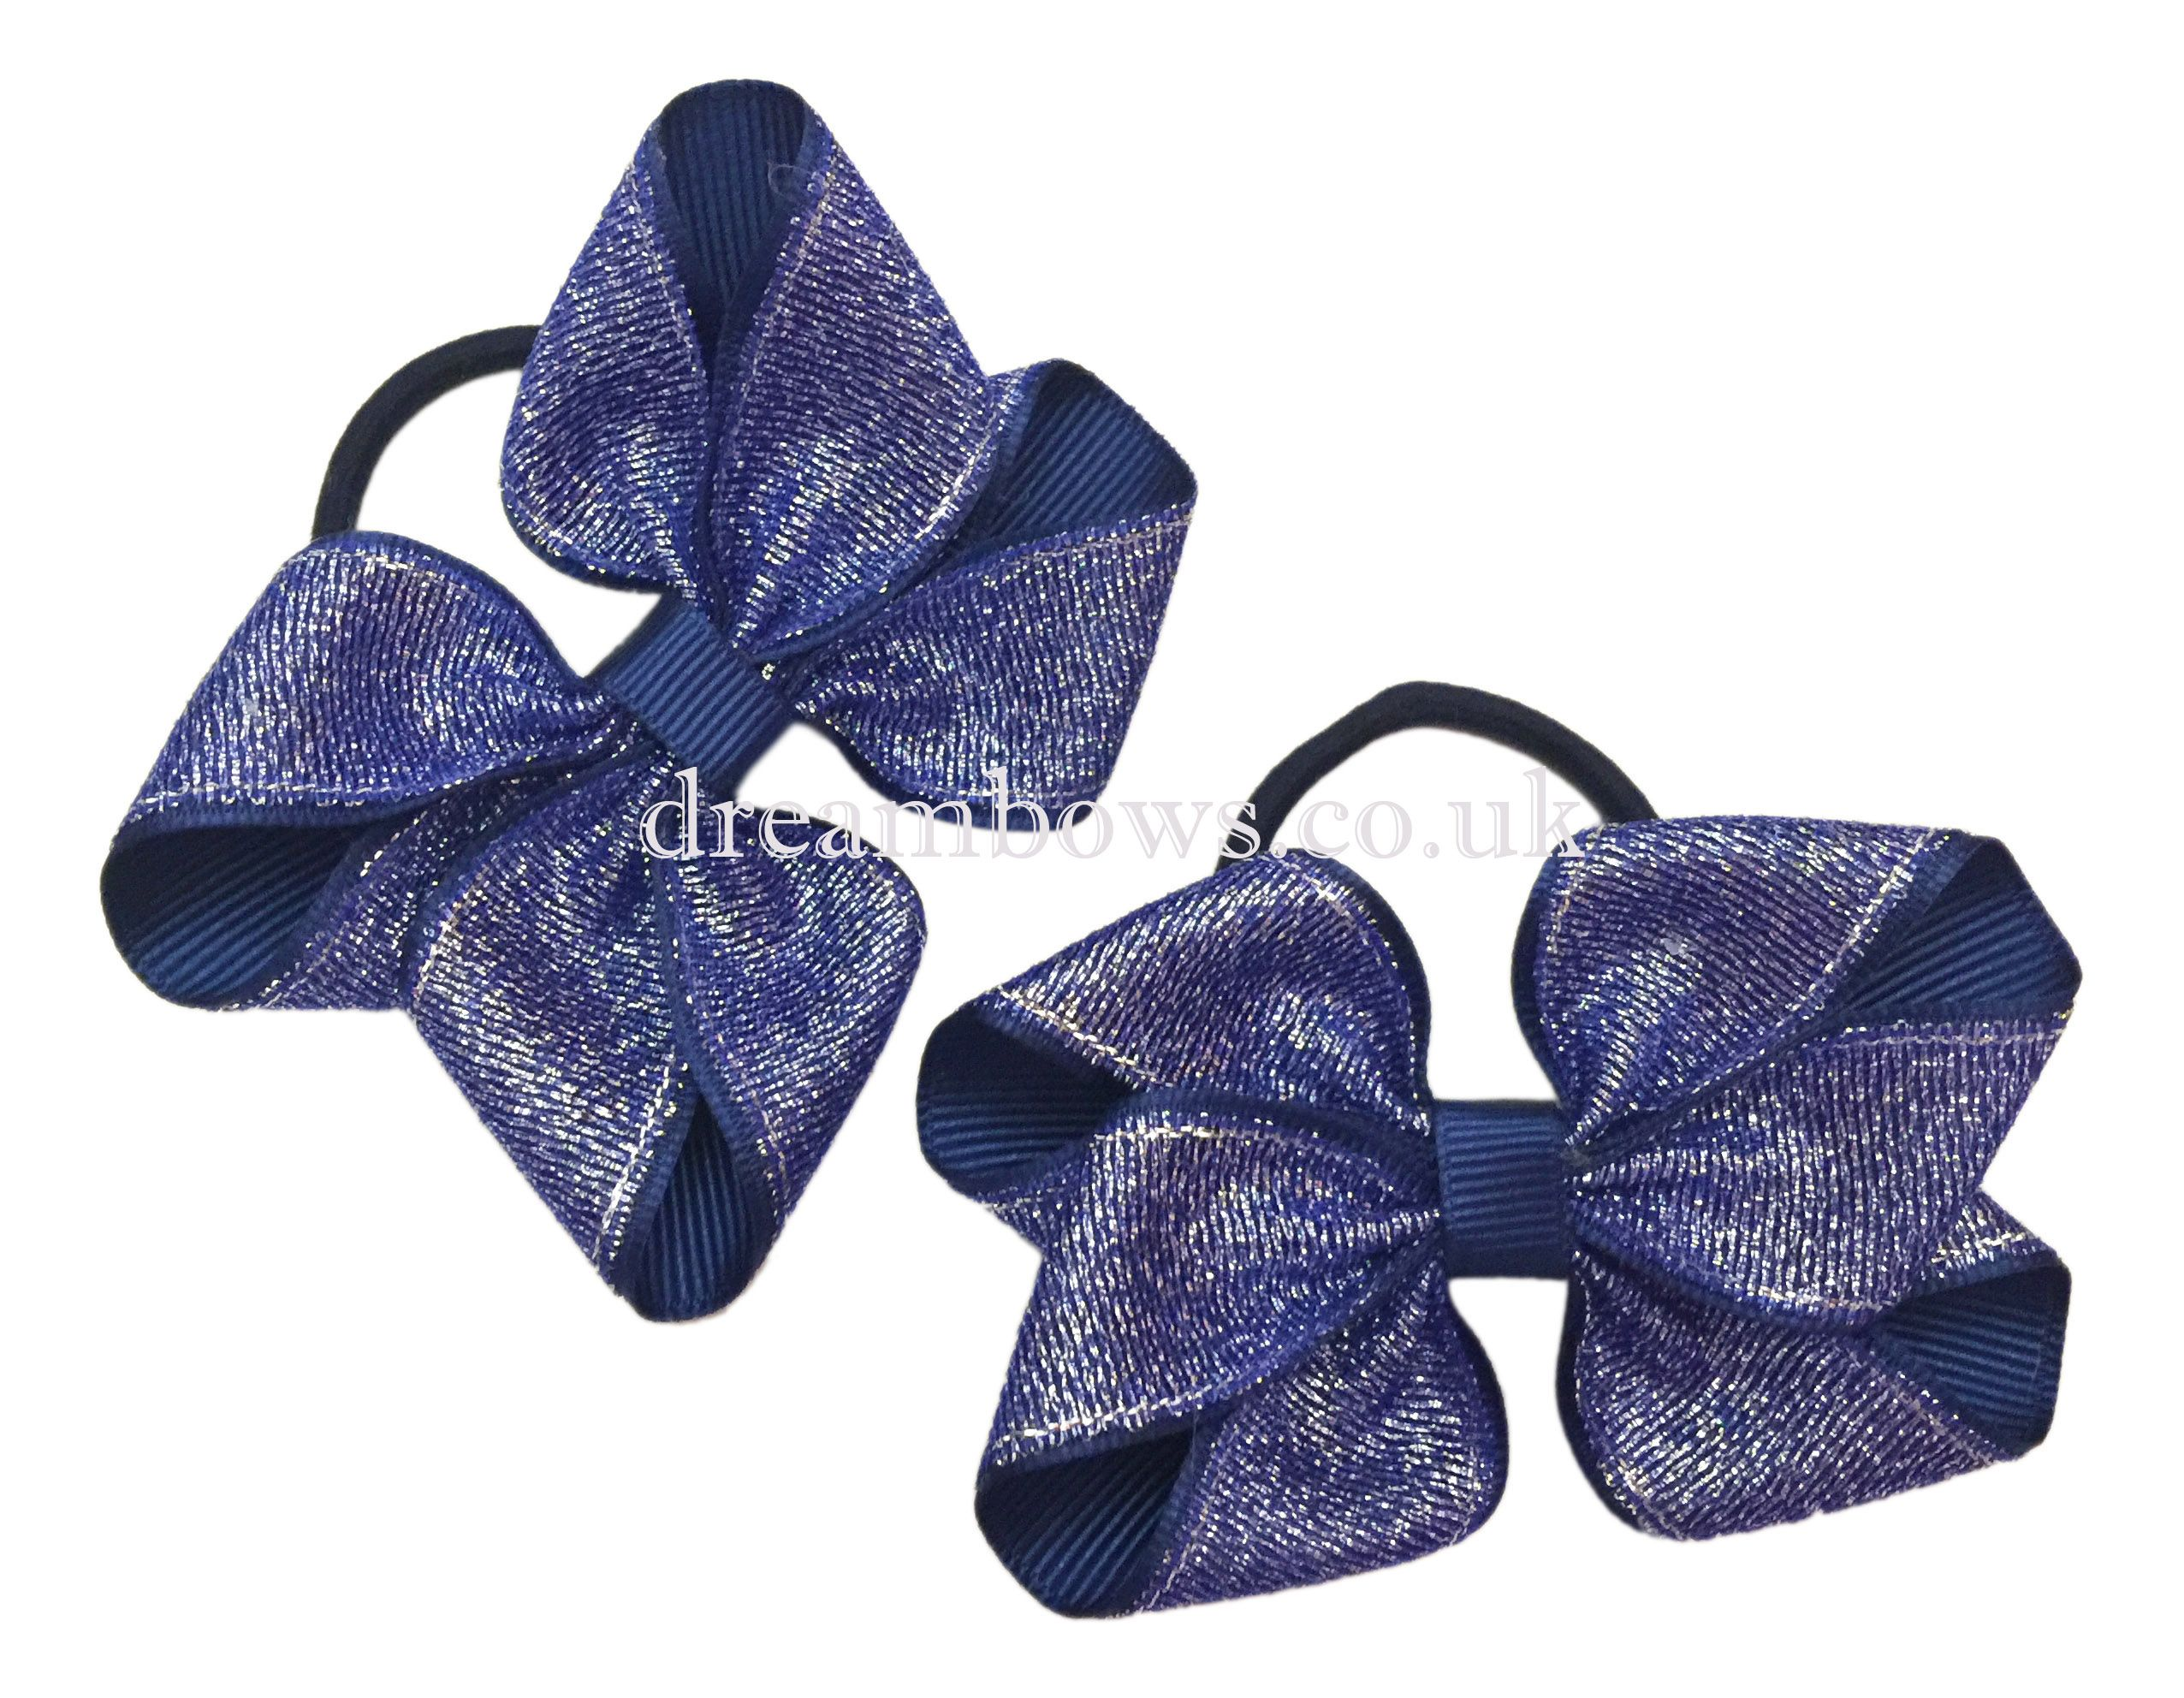 Royal blue glitter hair bows on thinbobbles - www.dreambows.co.uk